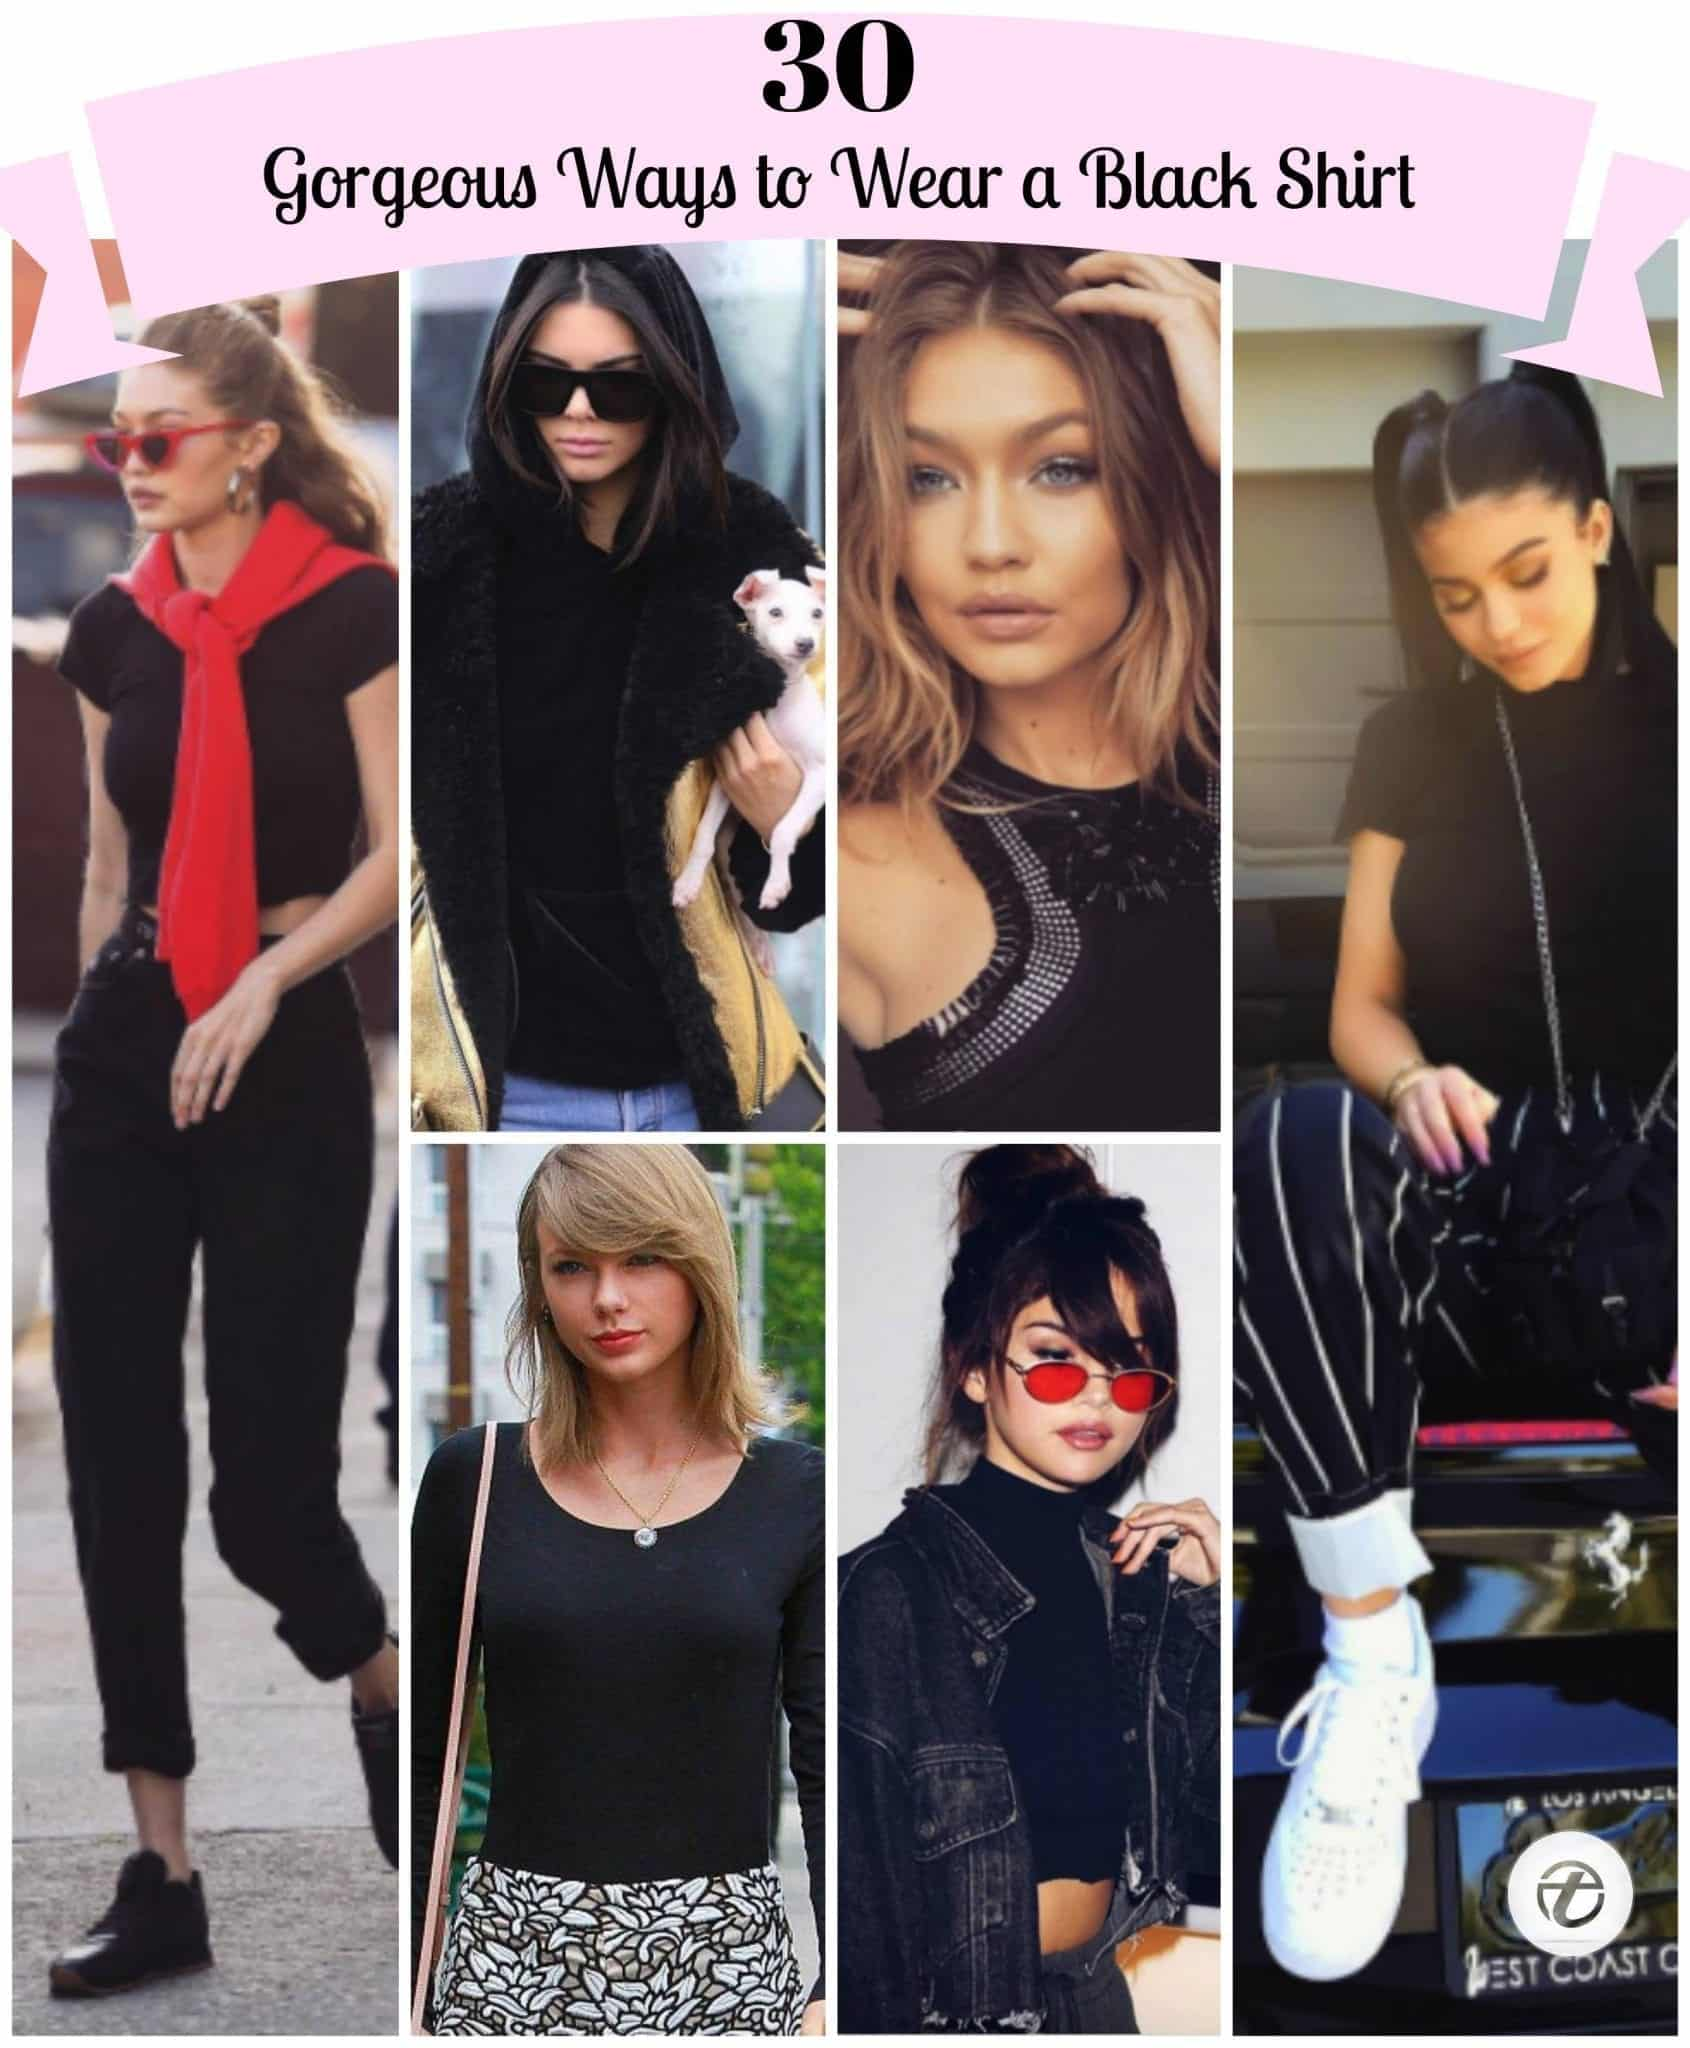 different-ways-to-wear-a-black-shirt-for-girls Girls Black Shirt Outfits-30 Different Ways to Wear Black Shirts